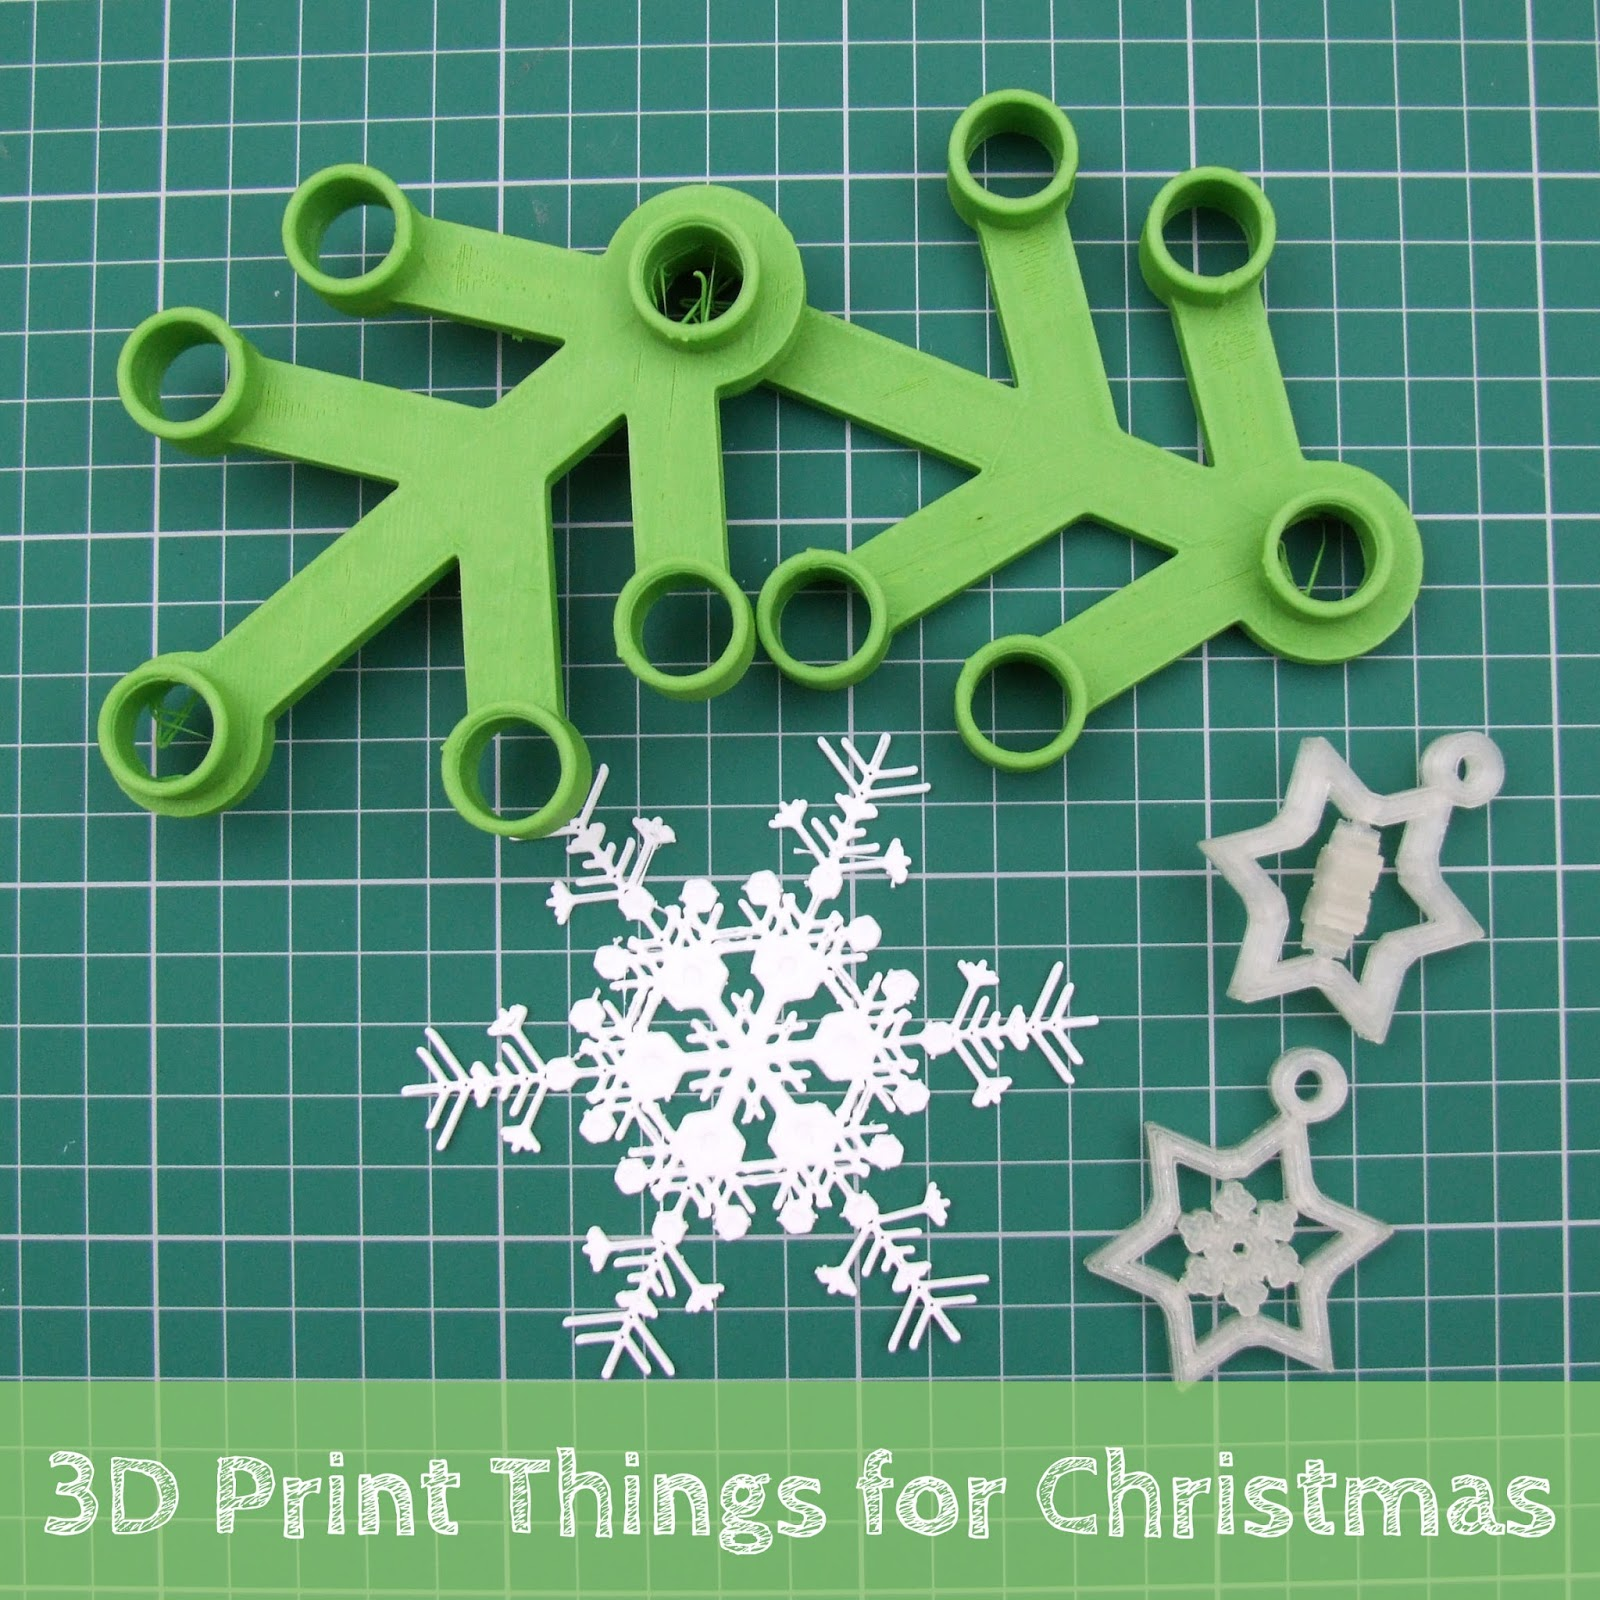 fun christmas things to 3d print for kids and teen